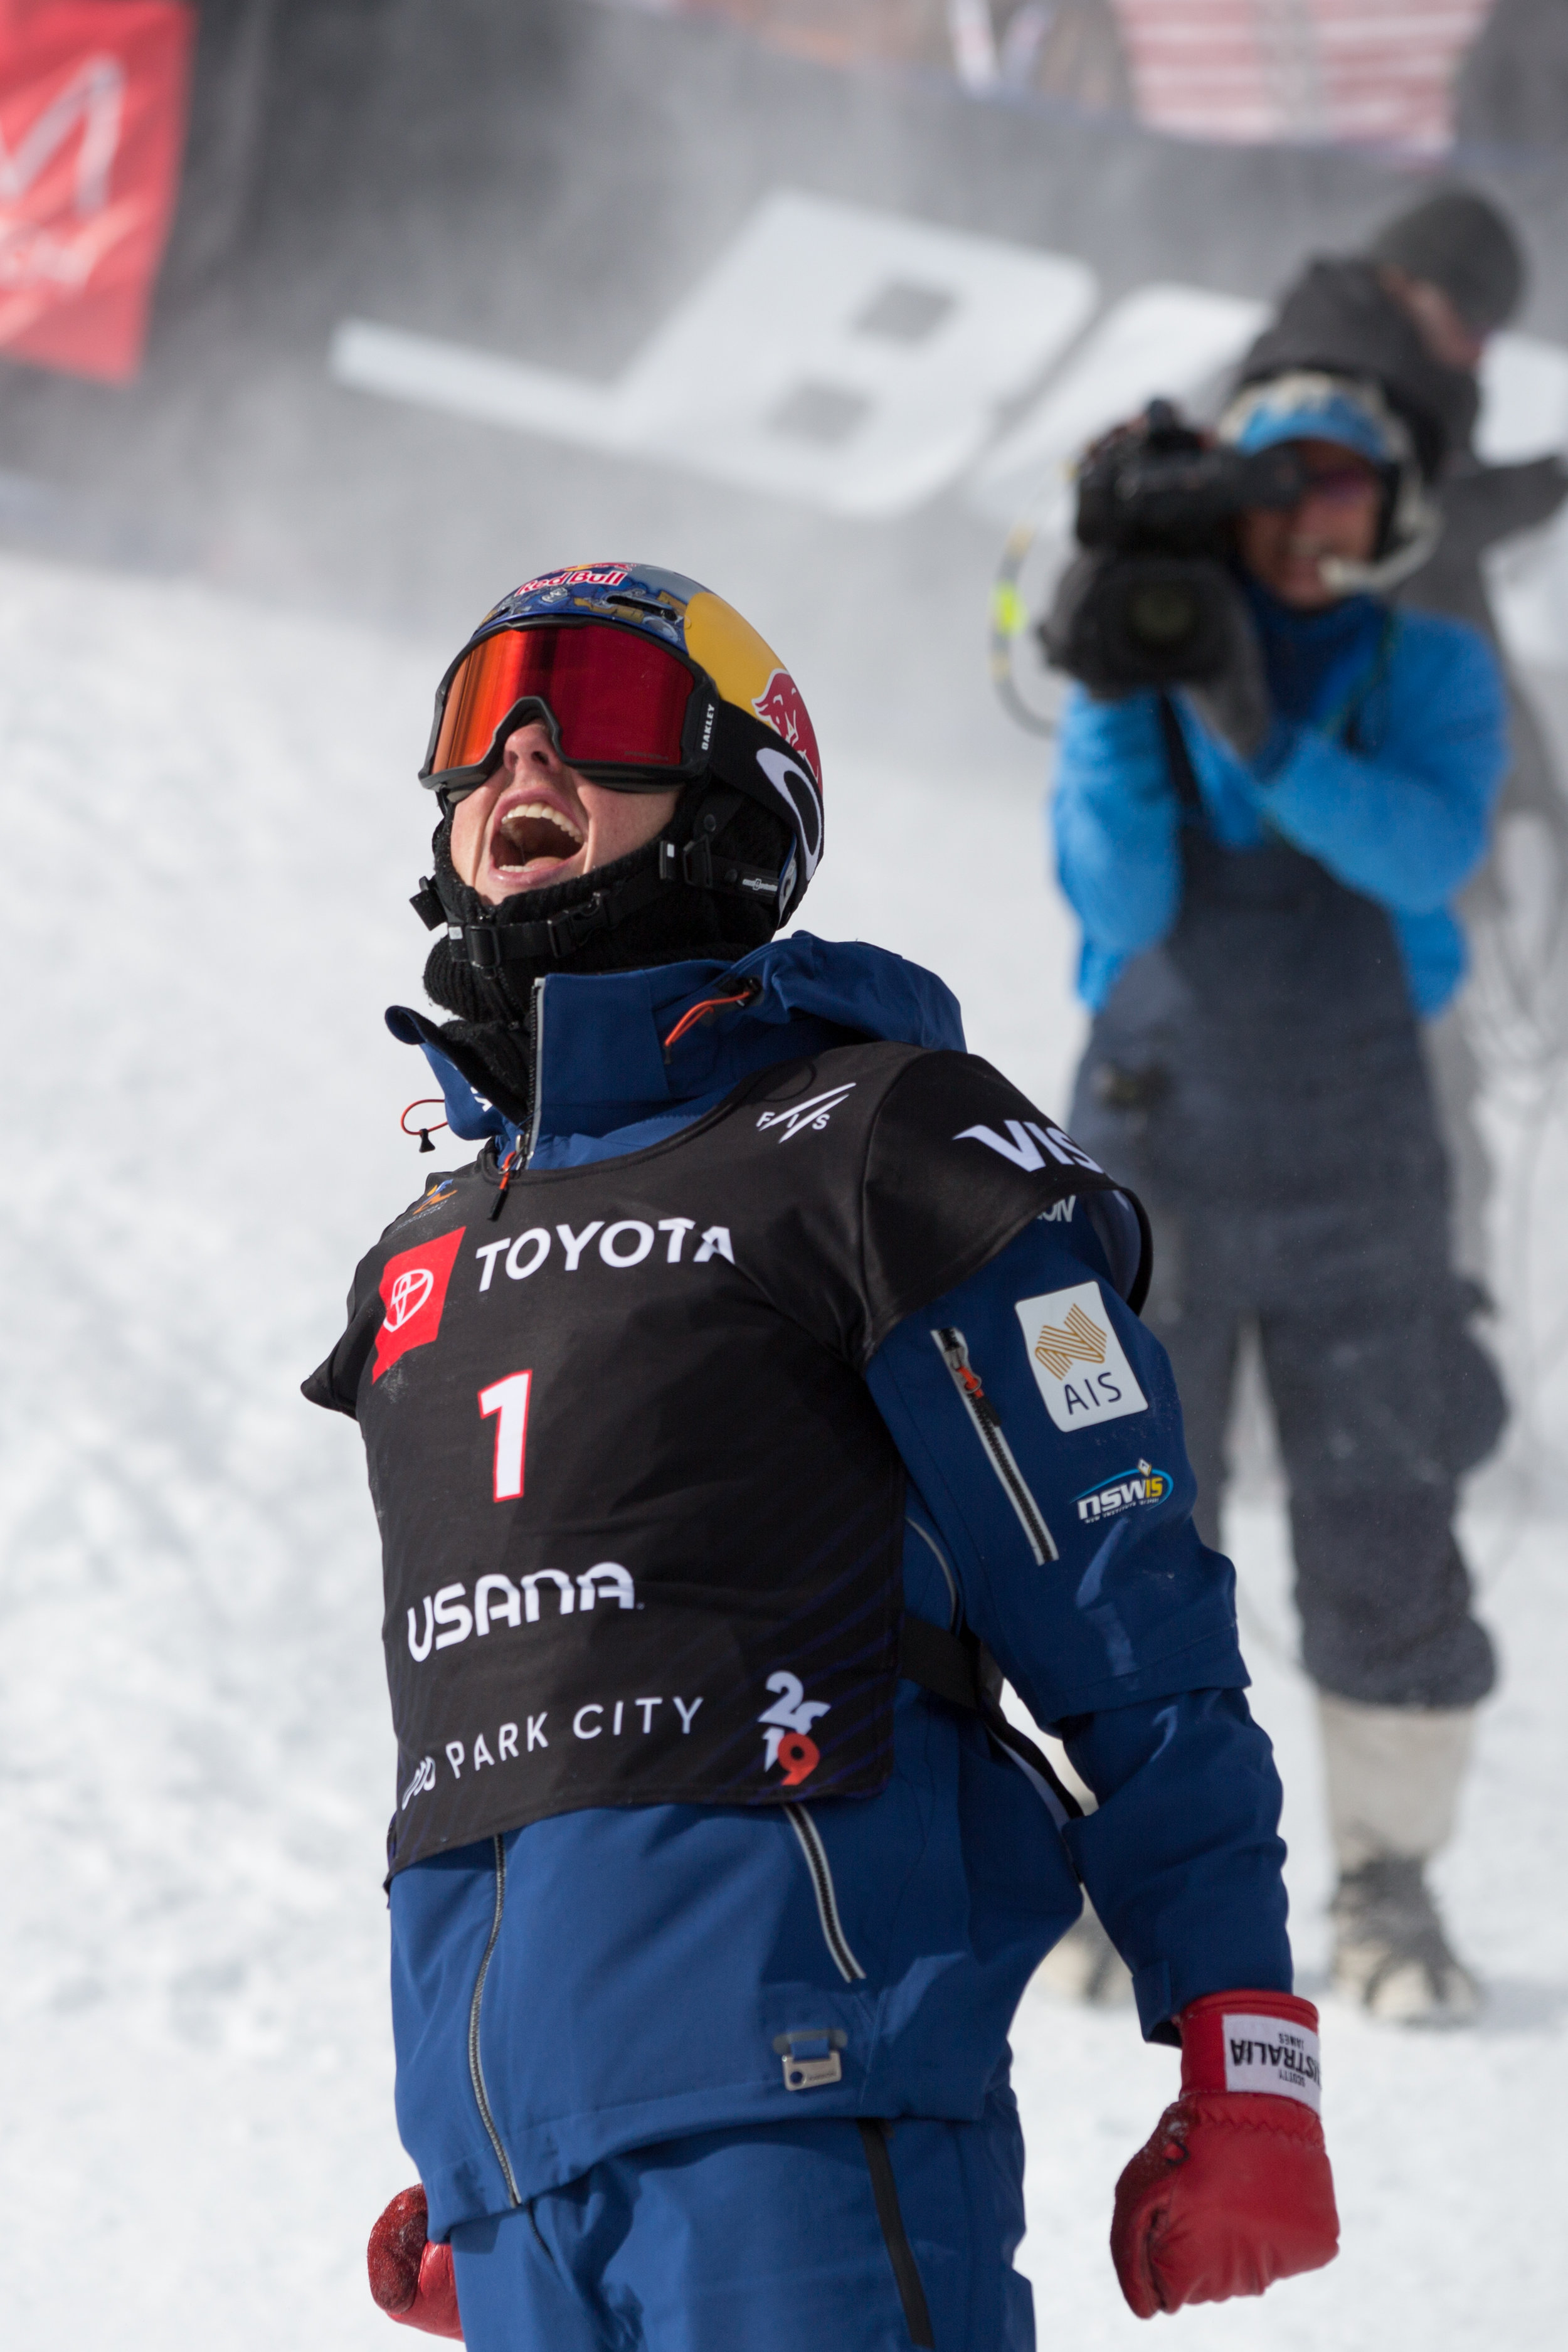 2019 News and Videos — FIS World Championships February 1-10